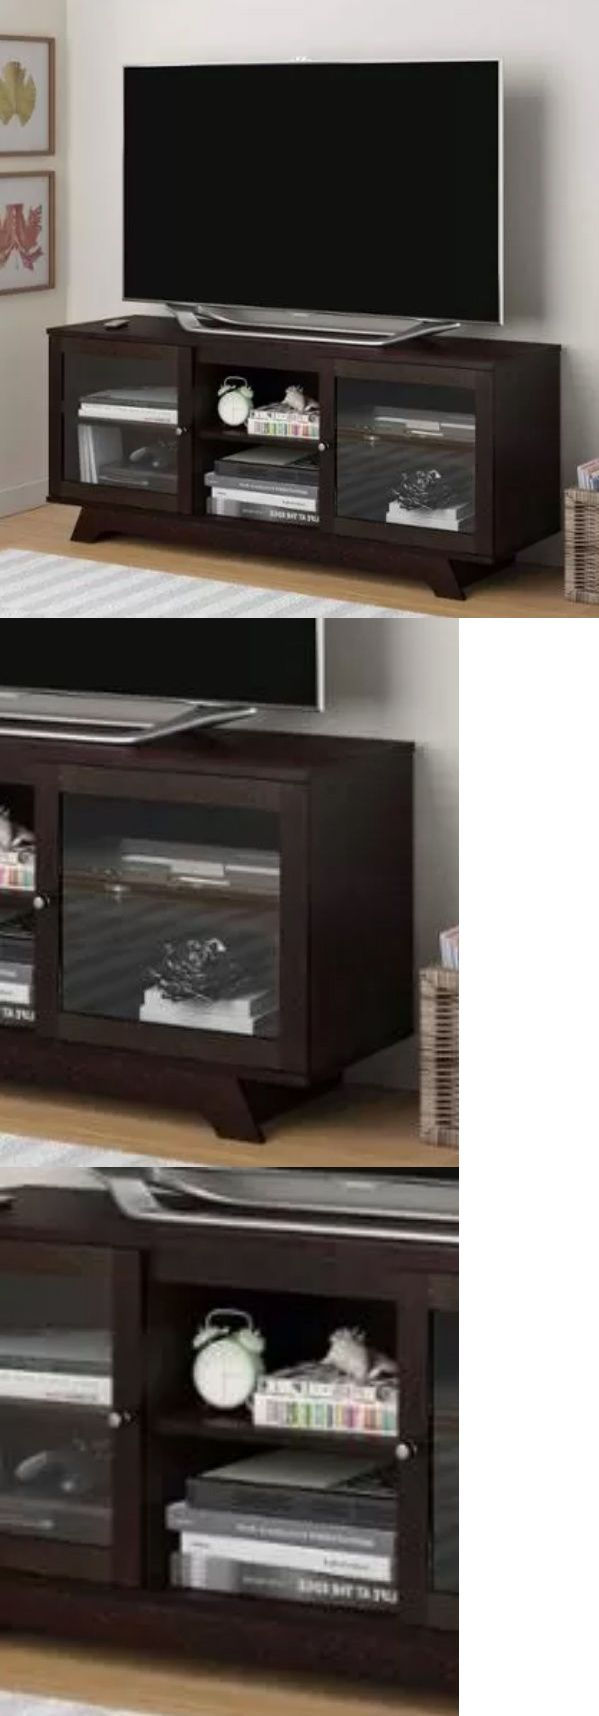 Entertainment Units TV Stands: Cherry Finish 55-Inch Tv Stand Entertainment Center Wood Media Storage Cabinet -> BUY IT NOW ONLY: $149.52 on eBay!